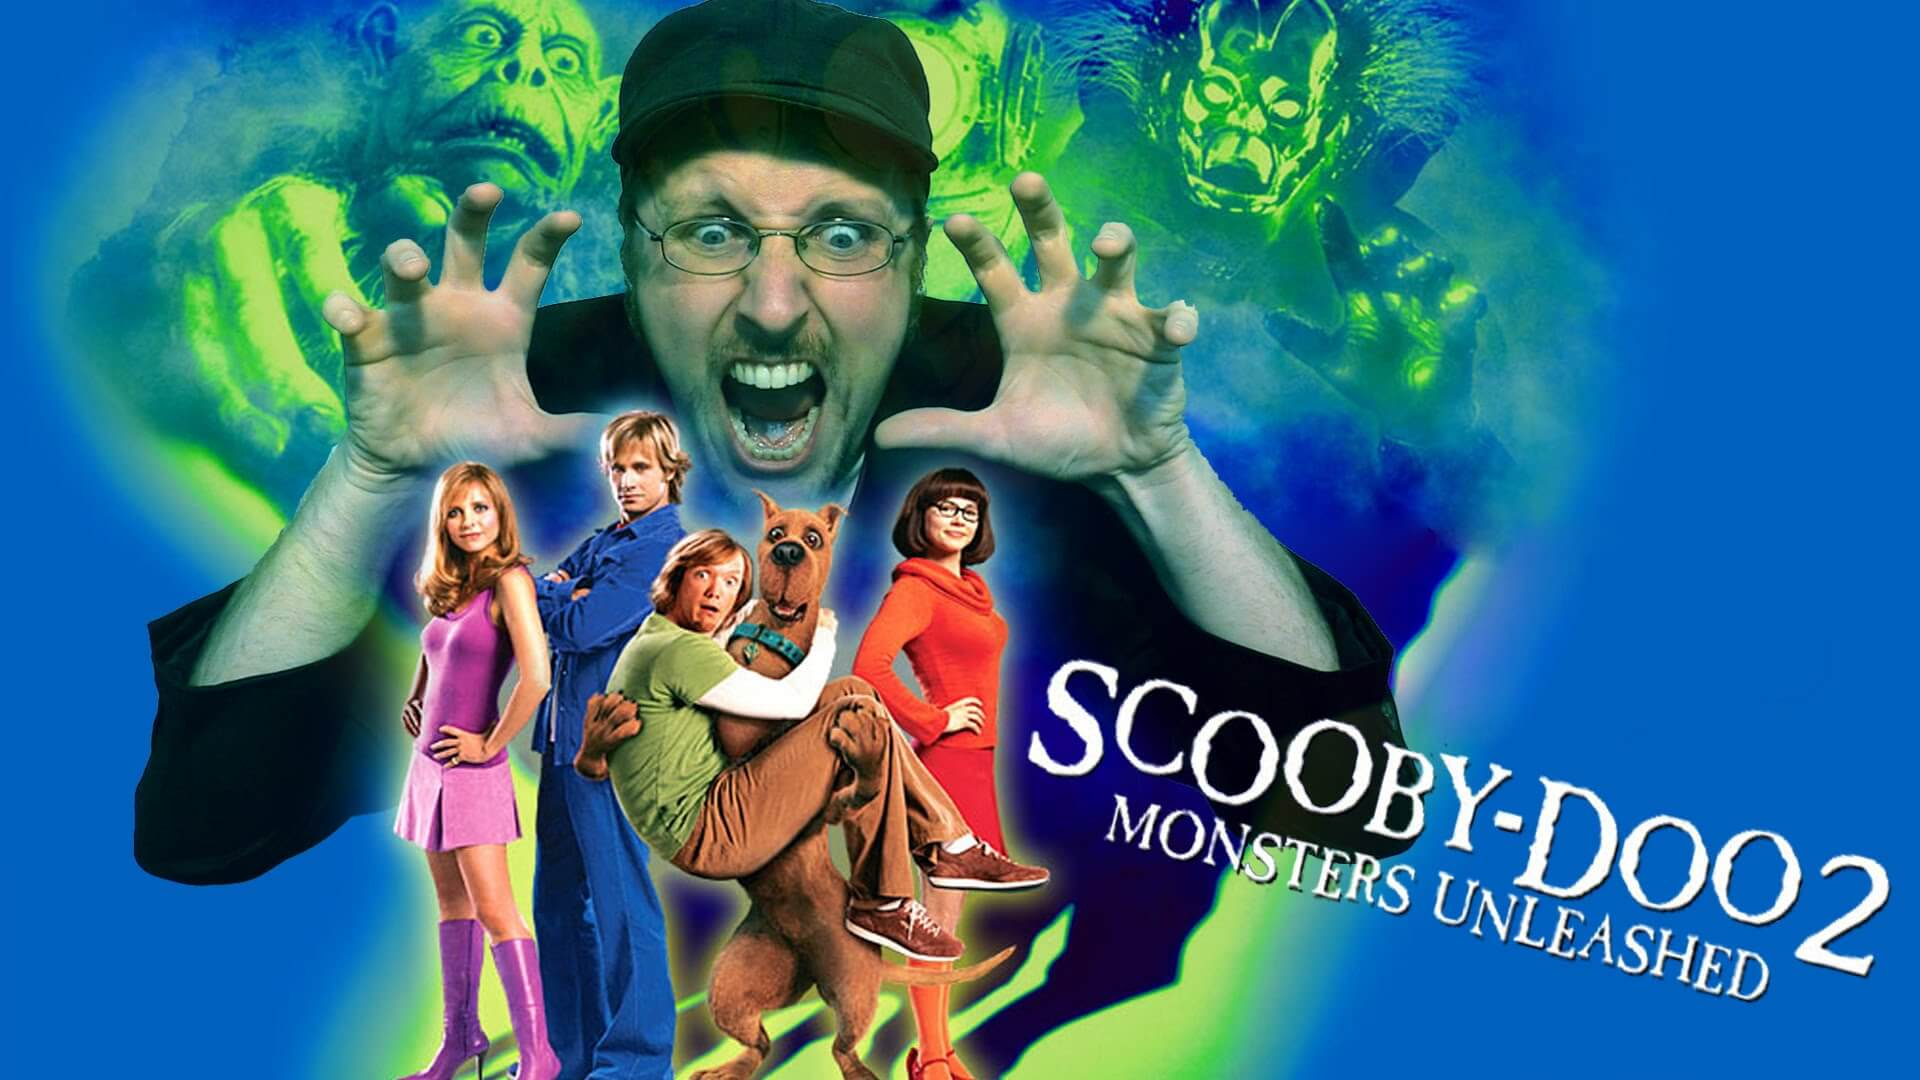 Scooby Doo 2 halloween movie